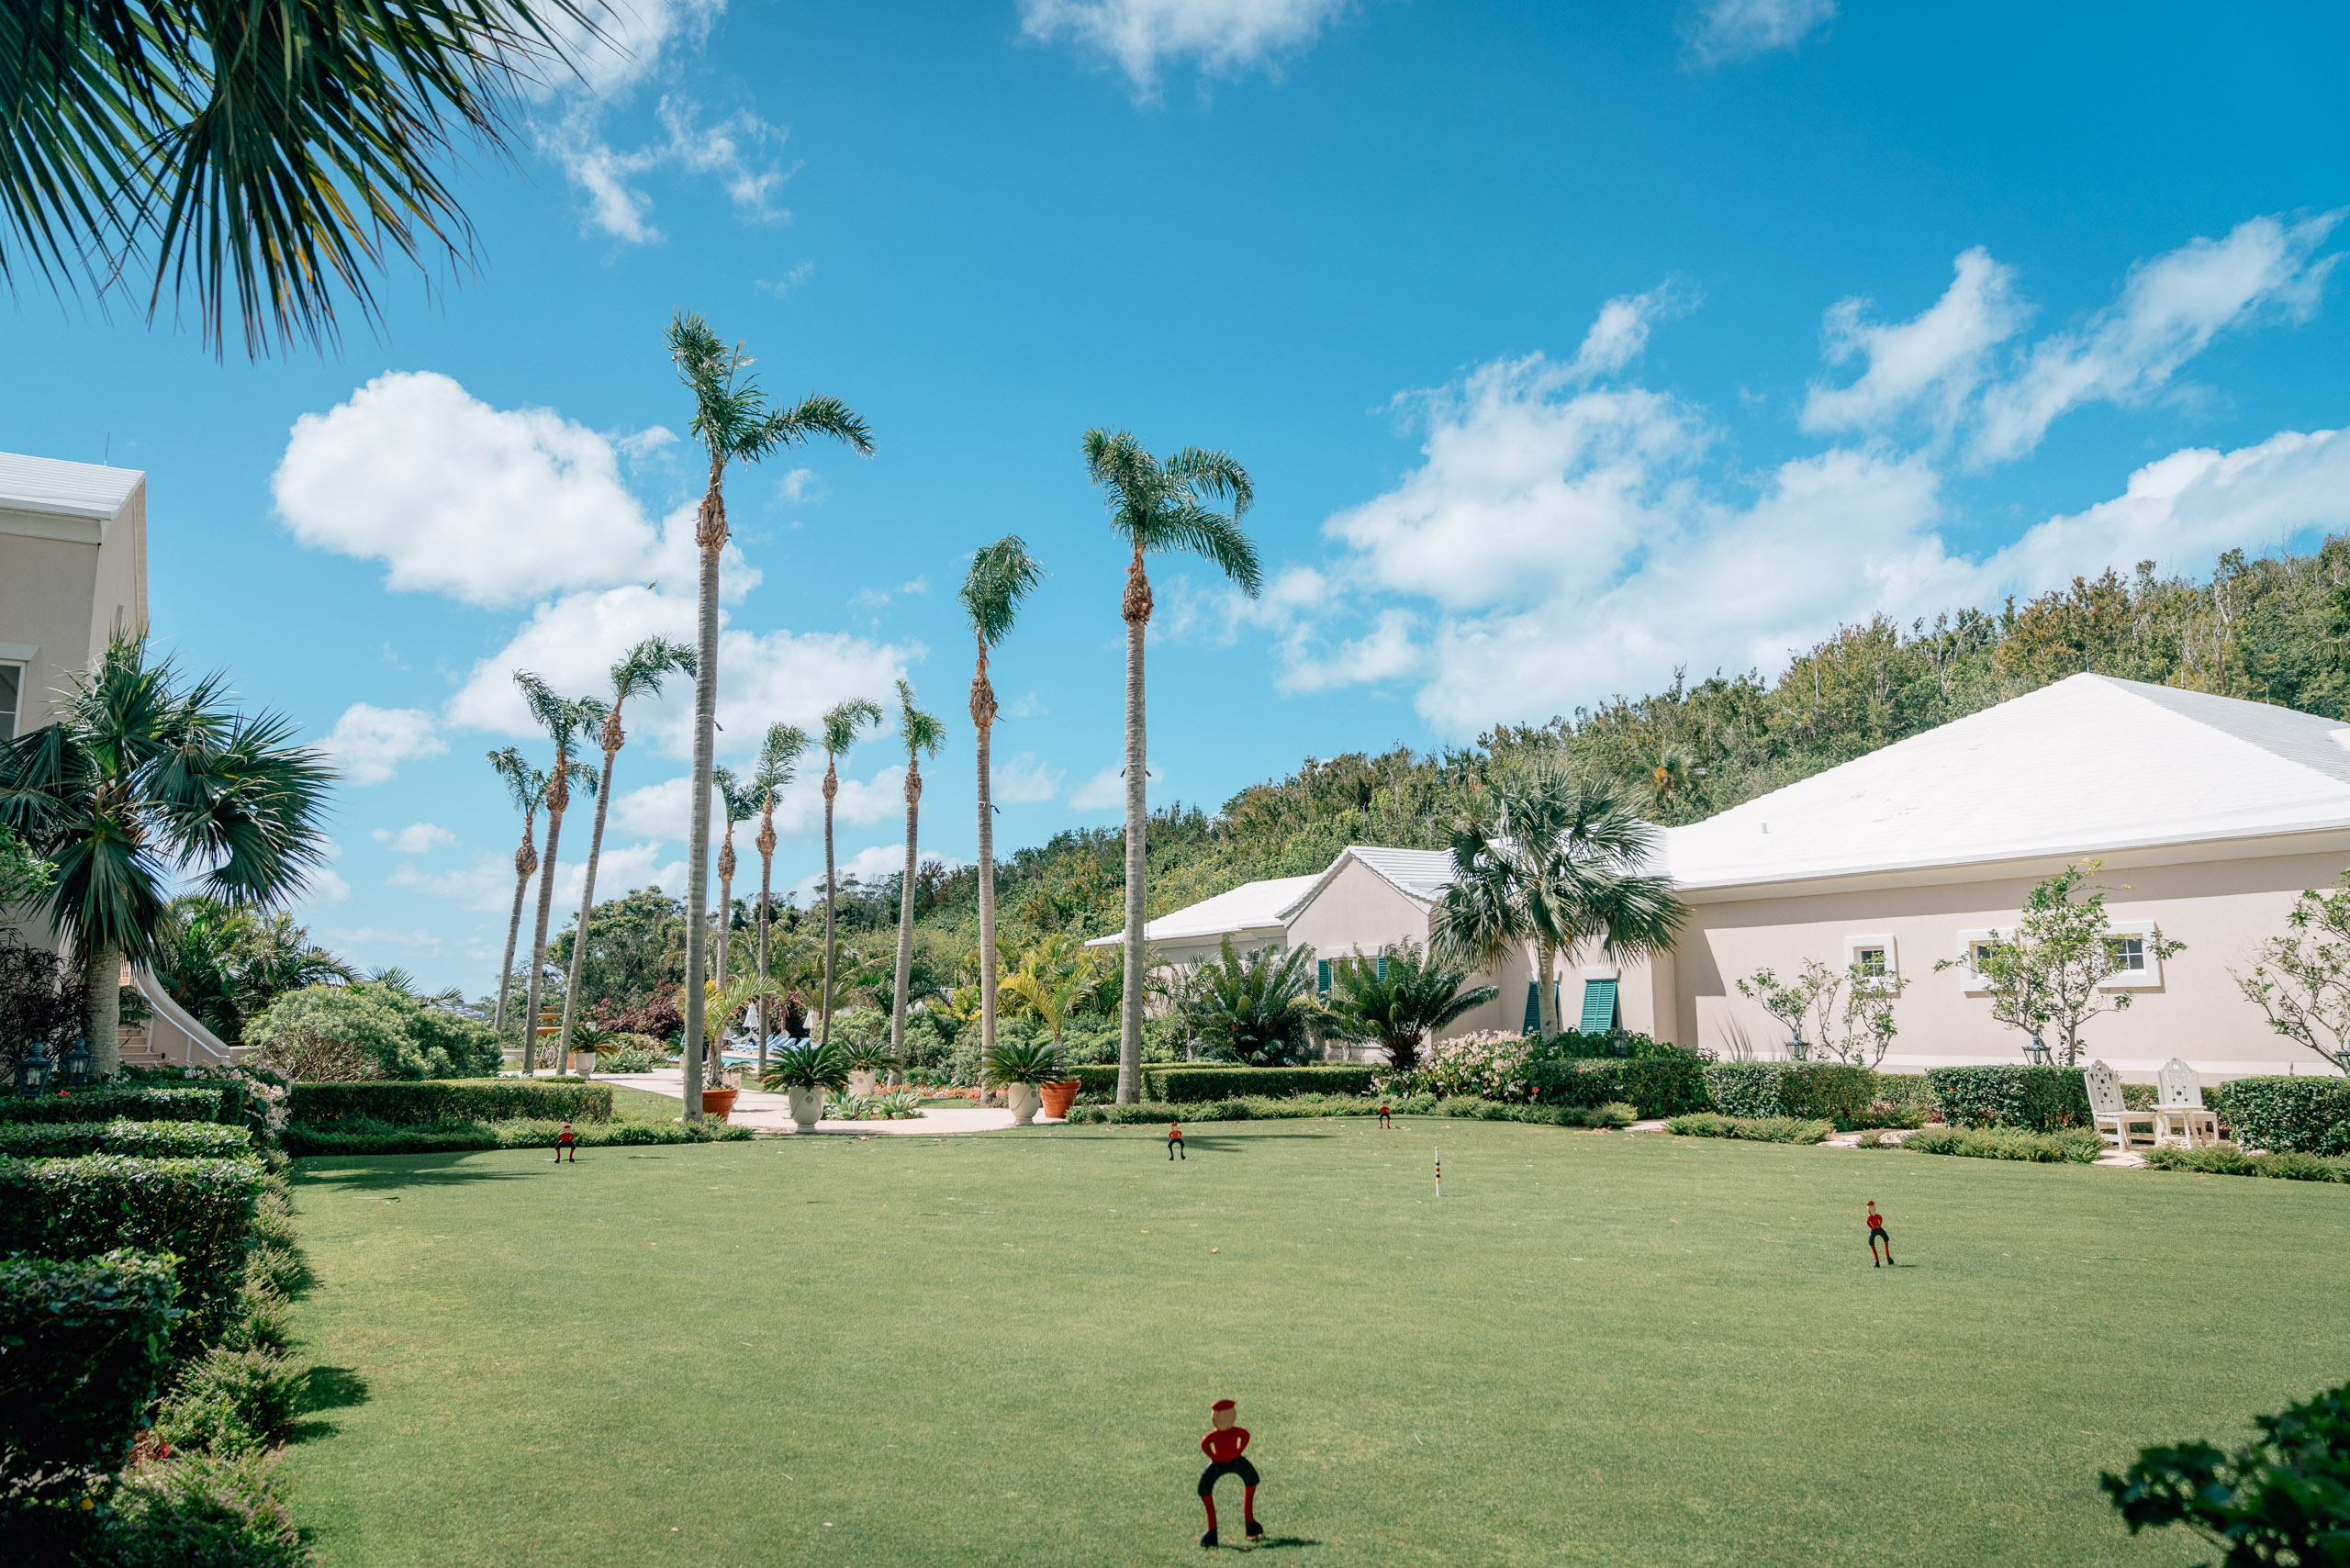 The Croquet Lawn at the Rosewood Bermuda